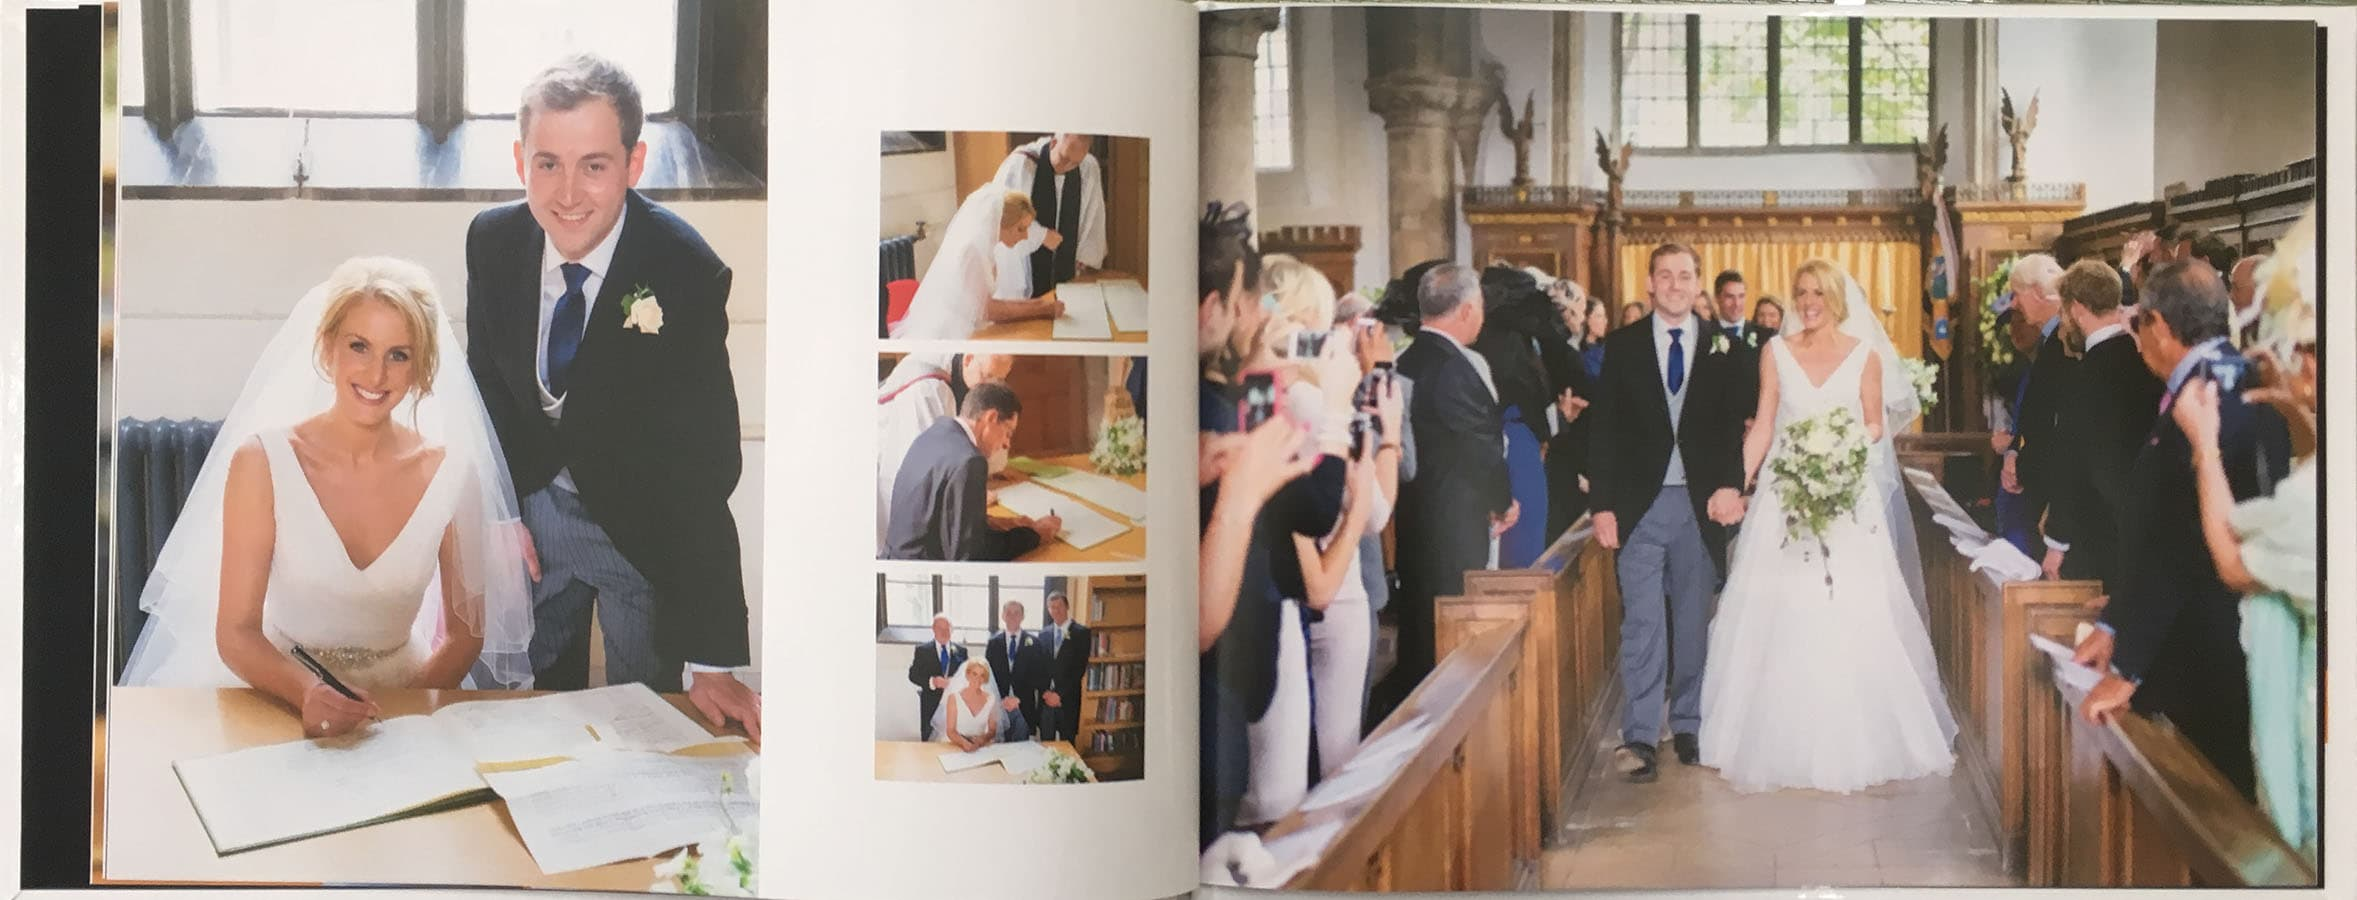 Photobook-wedding3